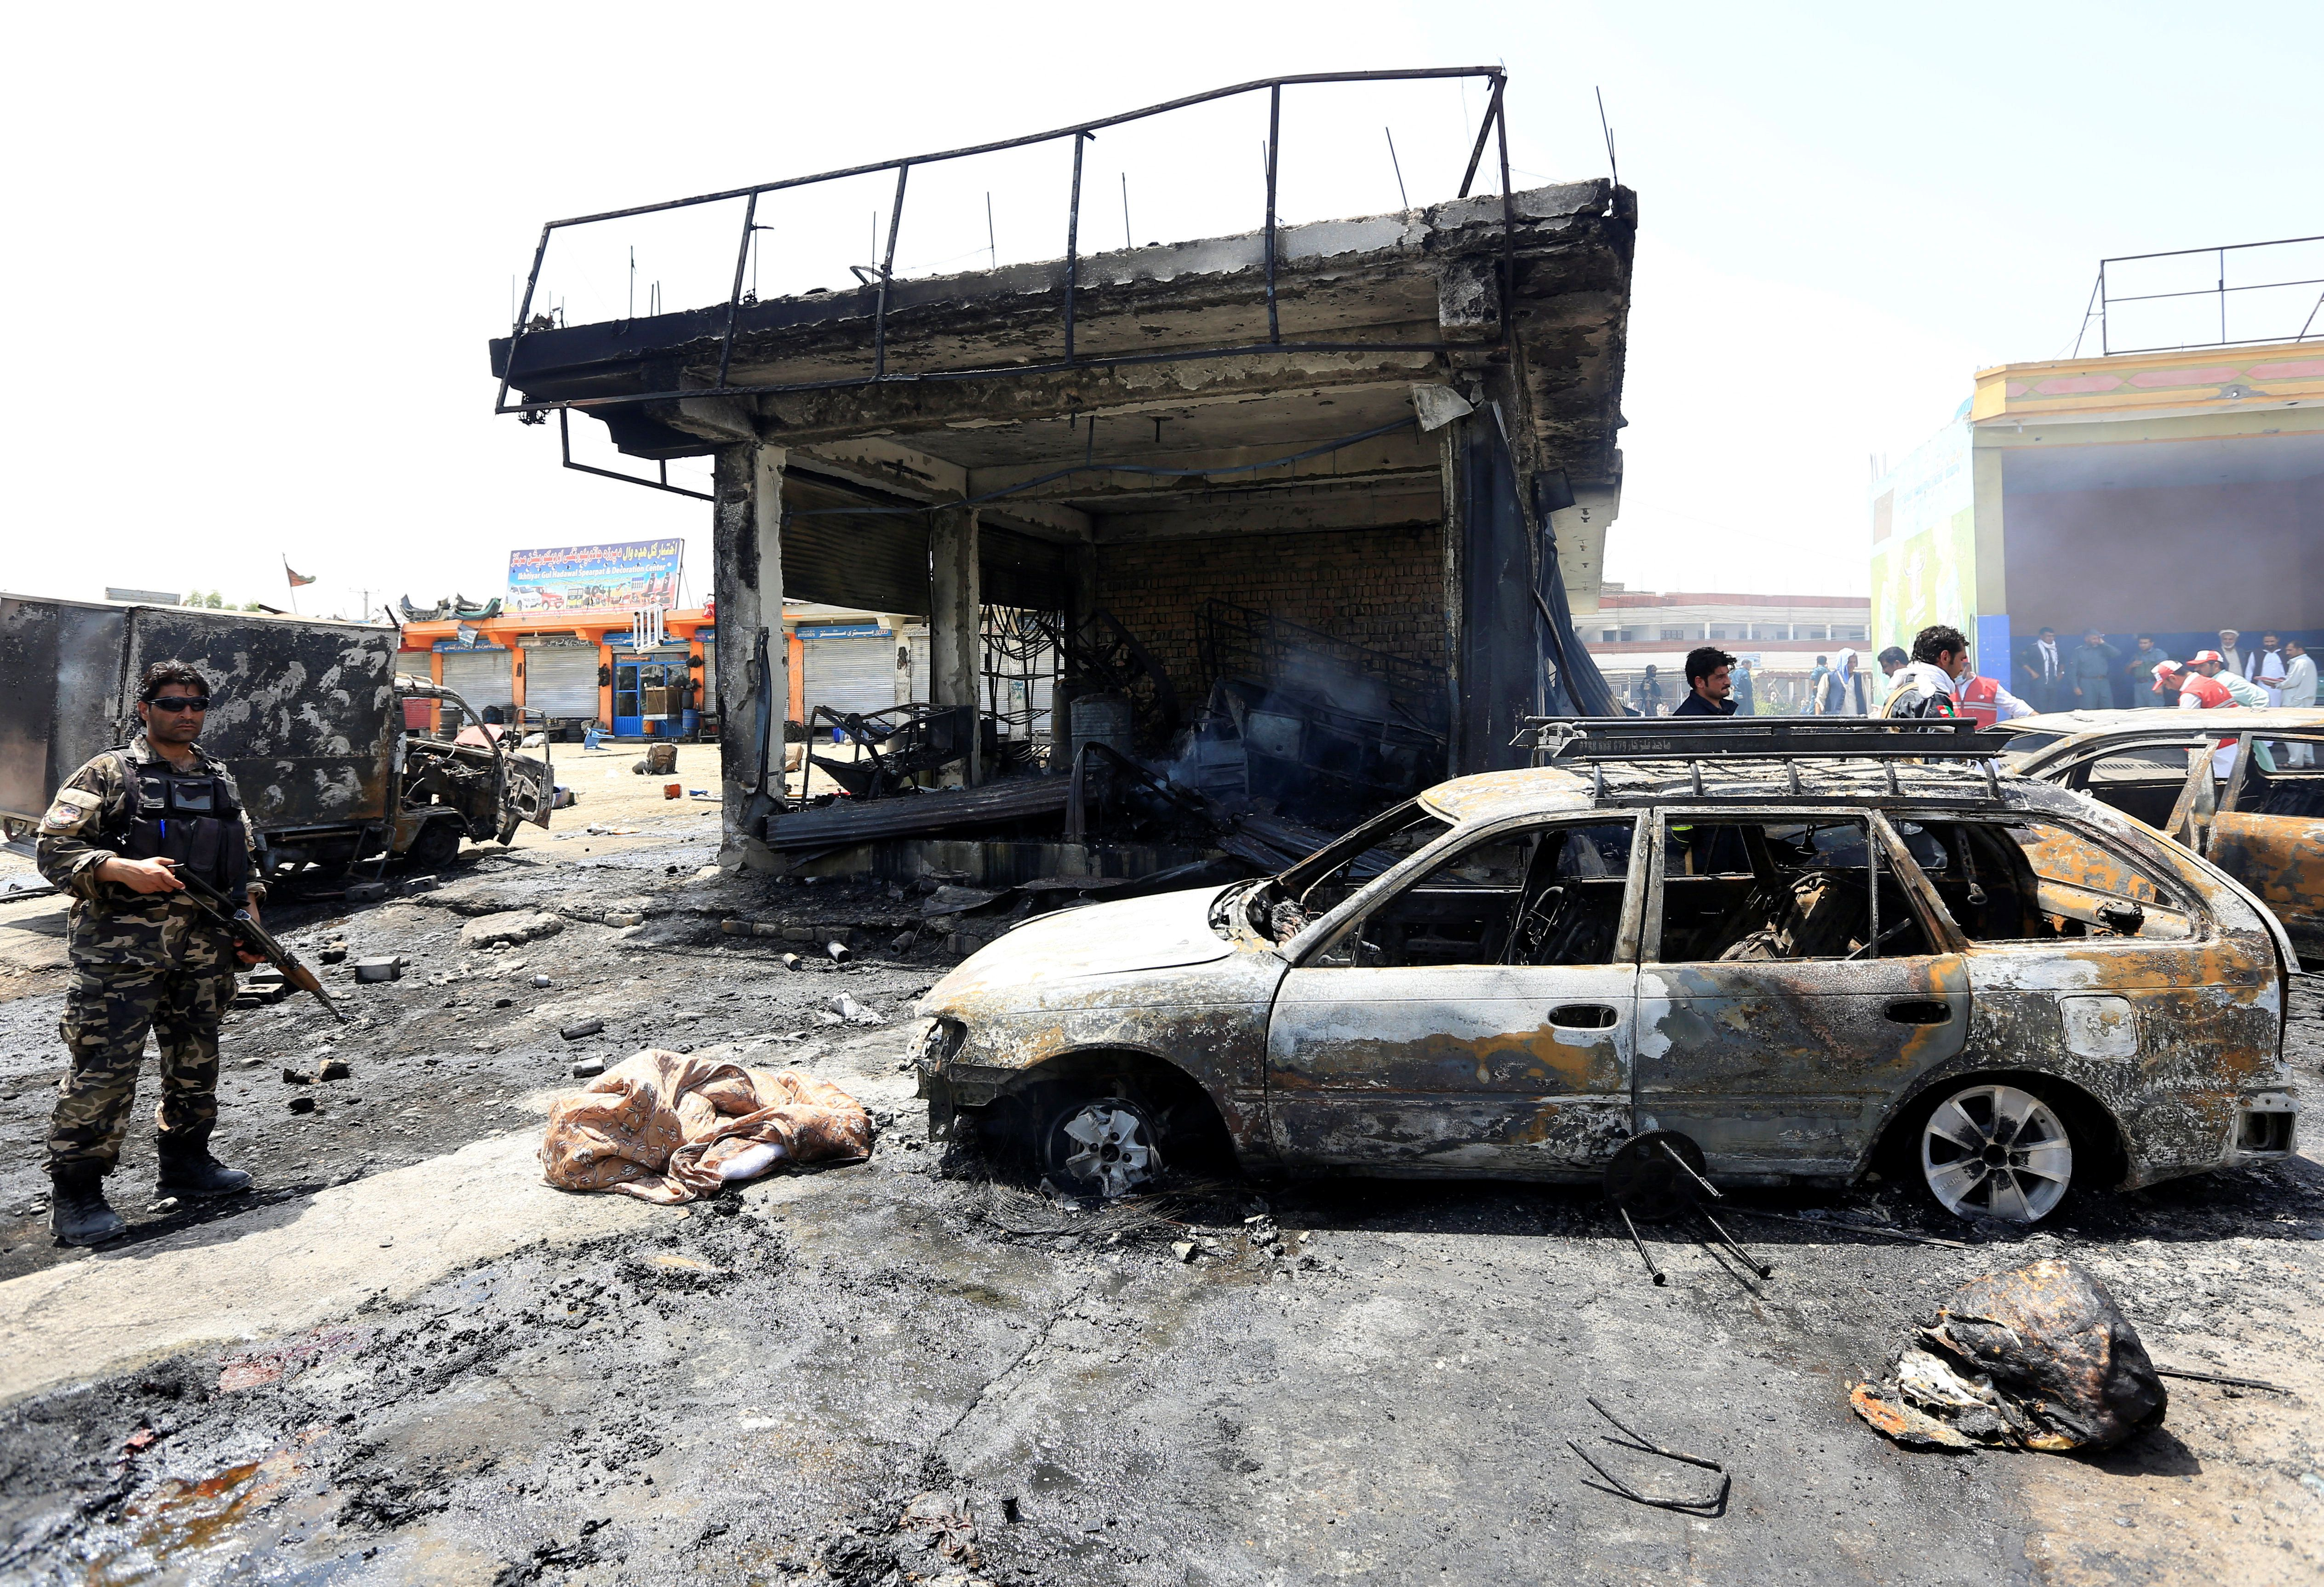 Afghan security forces inspect the site of a suicide attack in Jalalabad, Afghanistan on Tuesday.